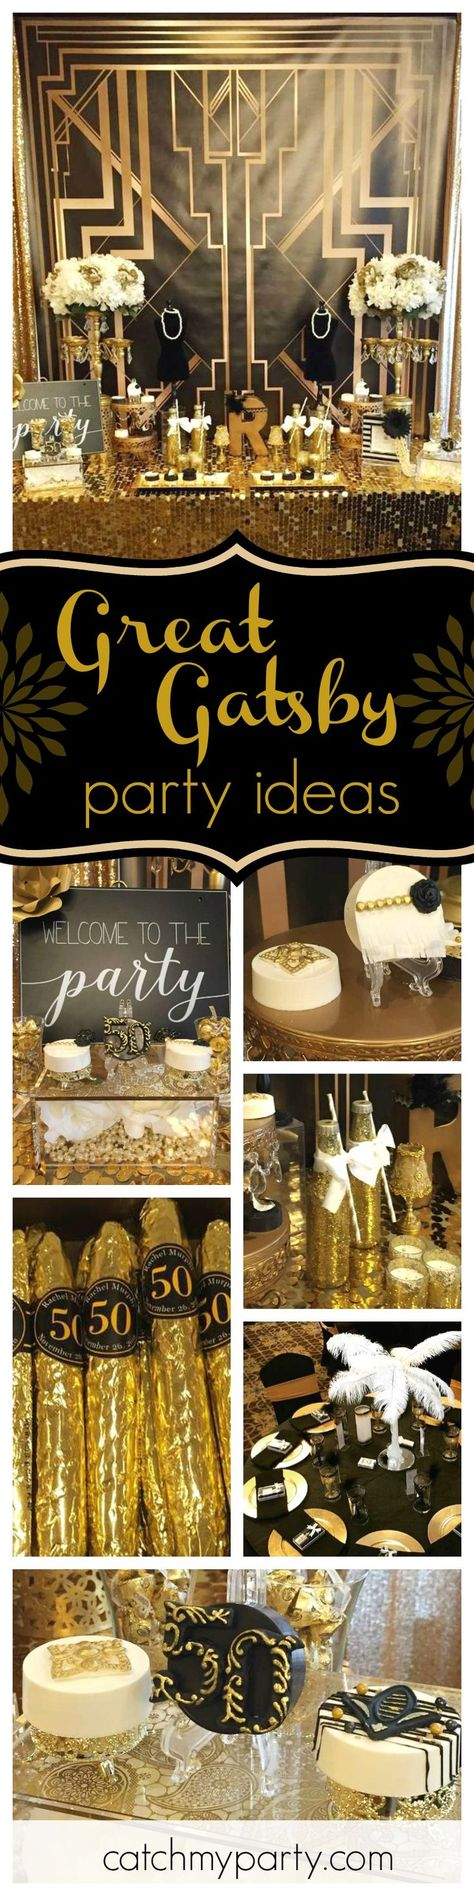 gatsby ideas Themes themes are the fundamental and often universal ideas explored in a literary work the decline of the american dream in the 1920s on the surface, the great gatsby is a story of the thwarted love between a man and a woman.